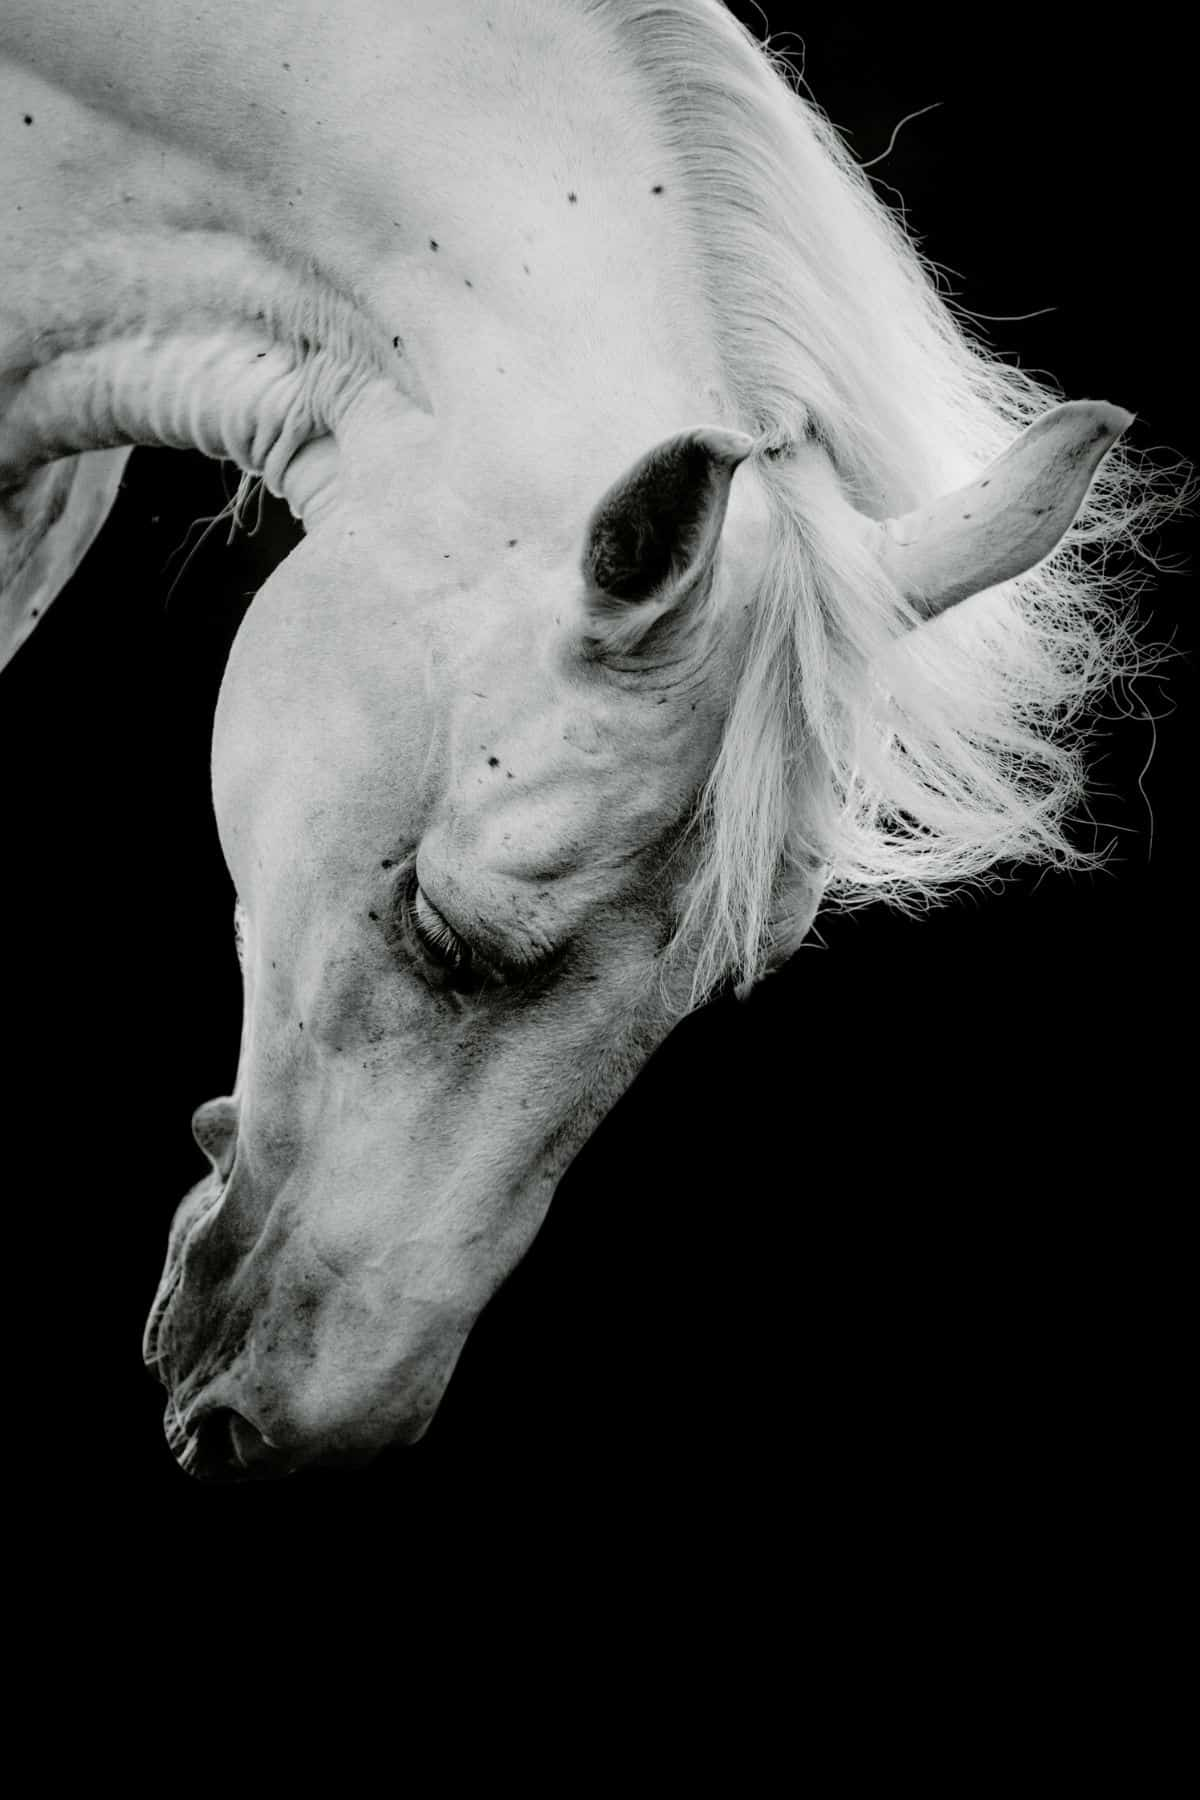 black background with white horse leaning down